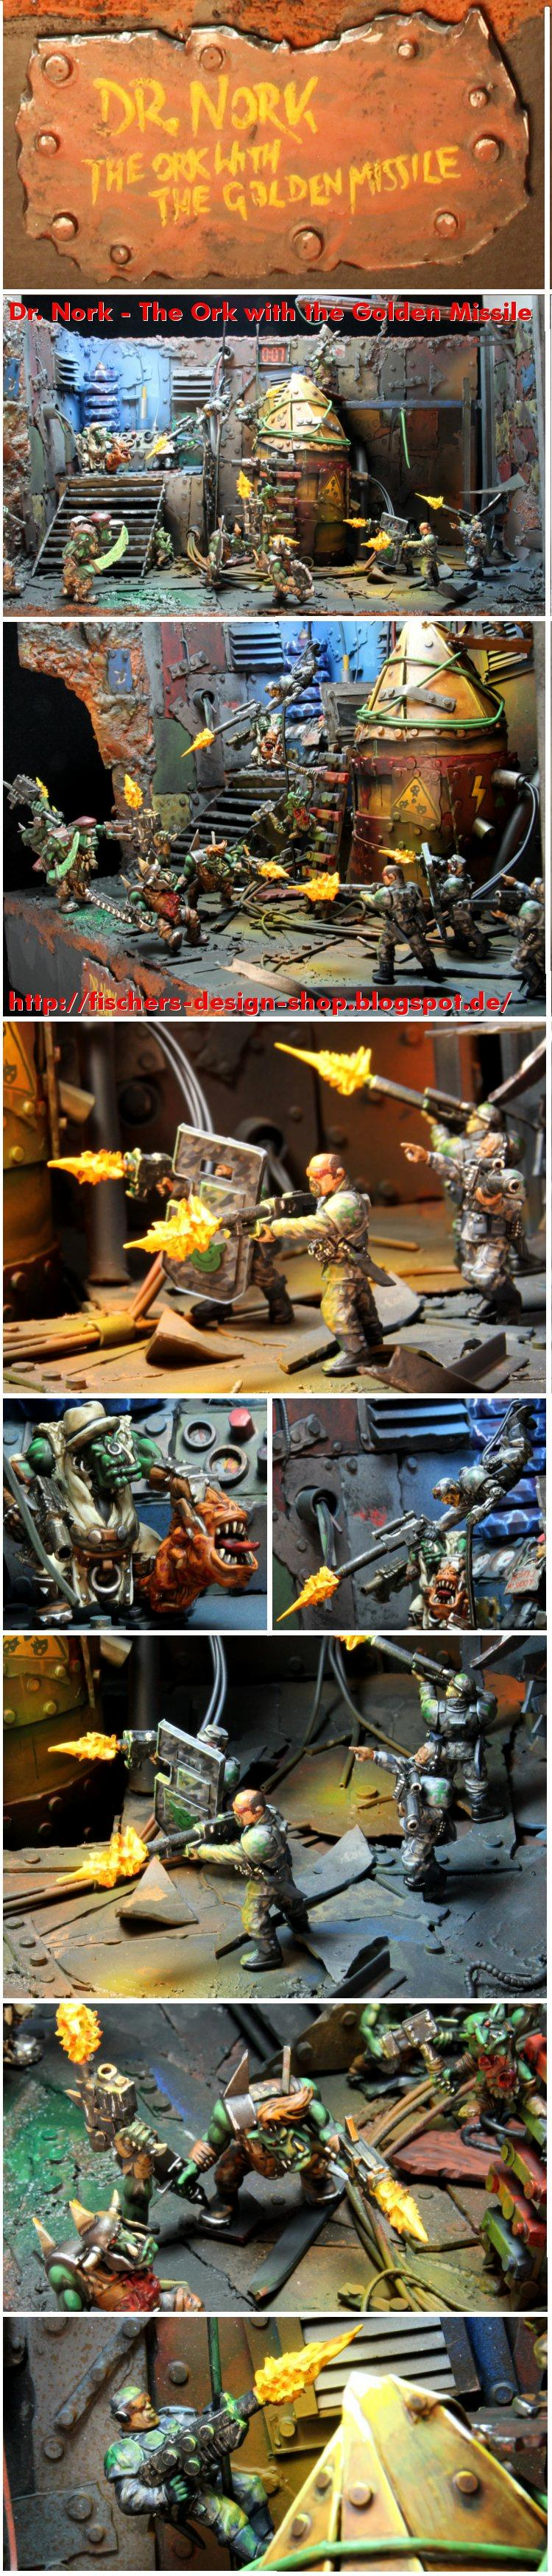 Dr. Nork, Imperial Guard, James Bond, Larry Correia, Not Santa, Object Source Lighting, Orks, Rappelling, Urban Camo